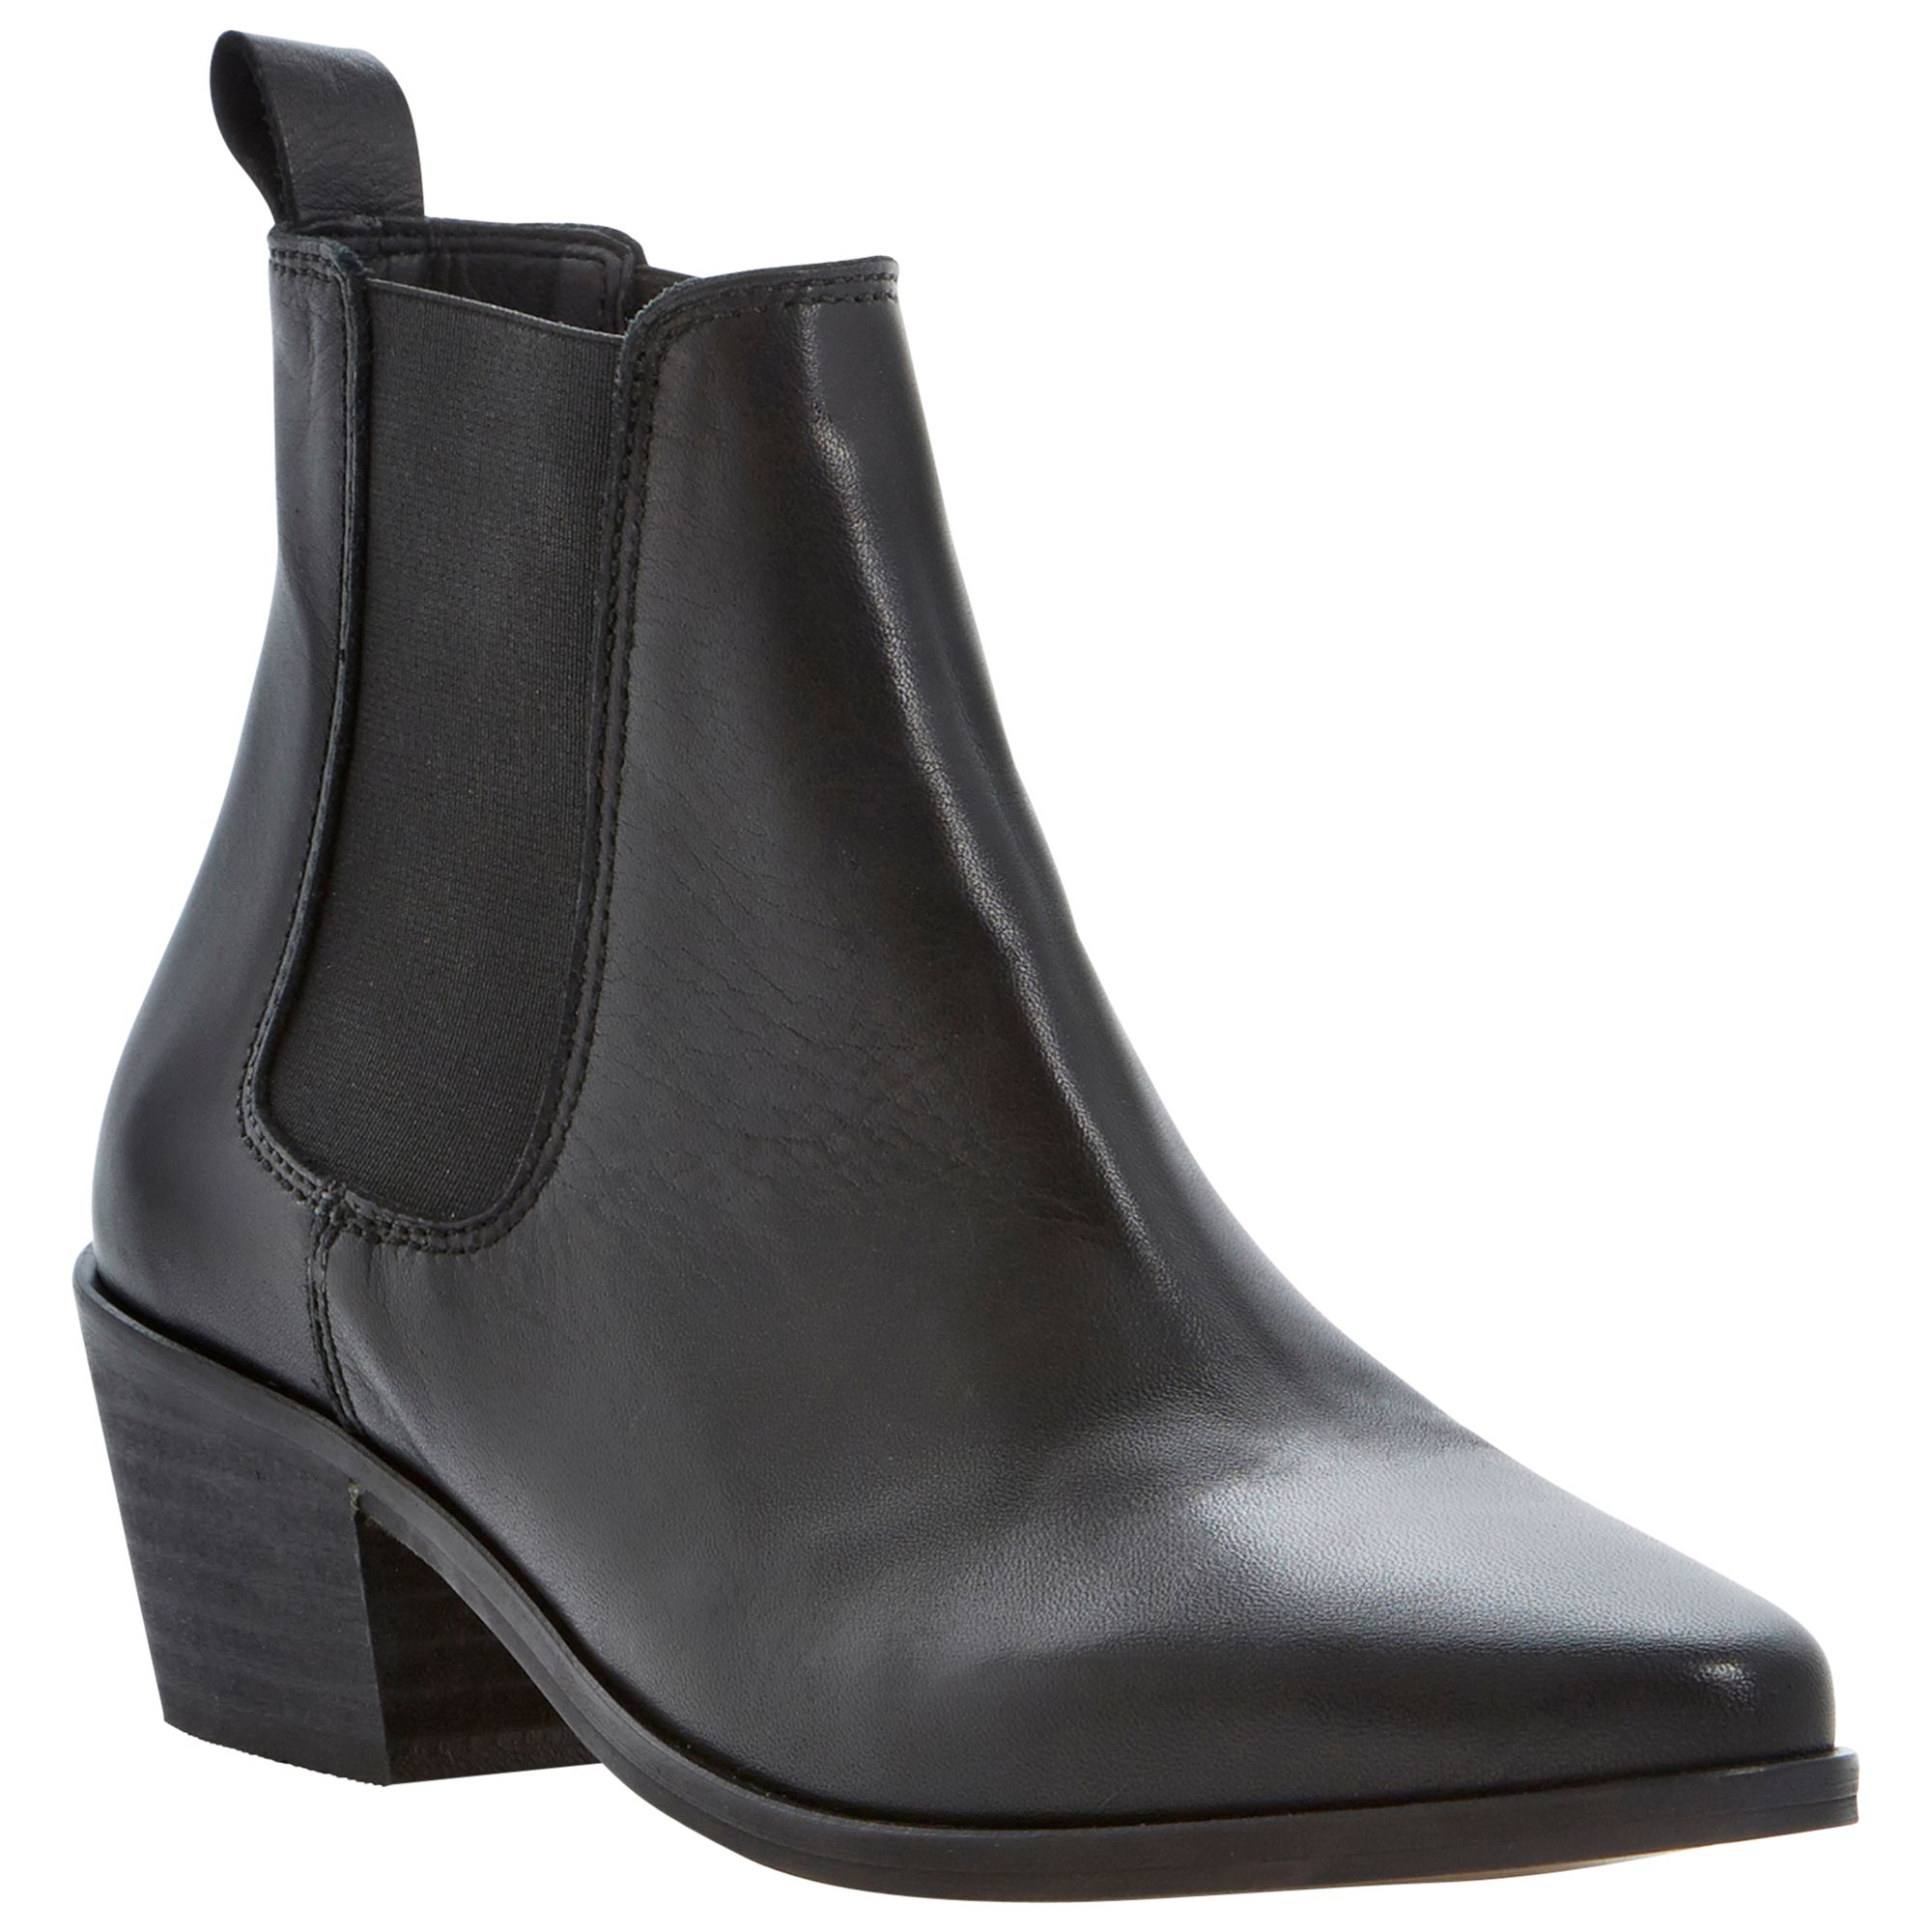 Dune Petra Leather Ankle Boots, Black